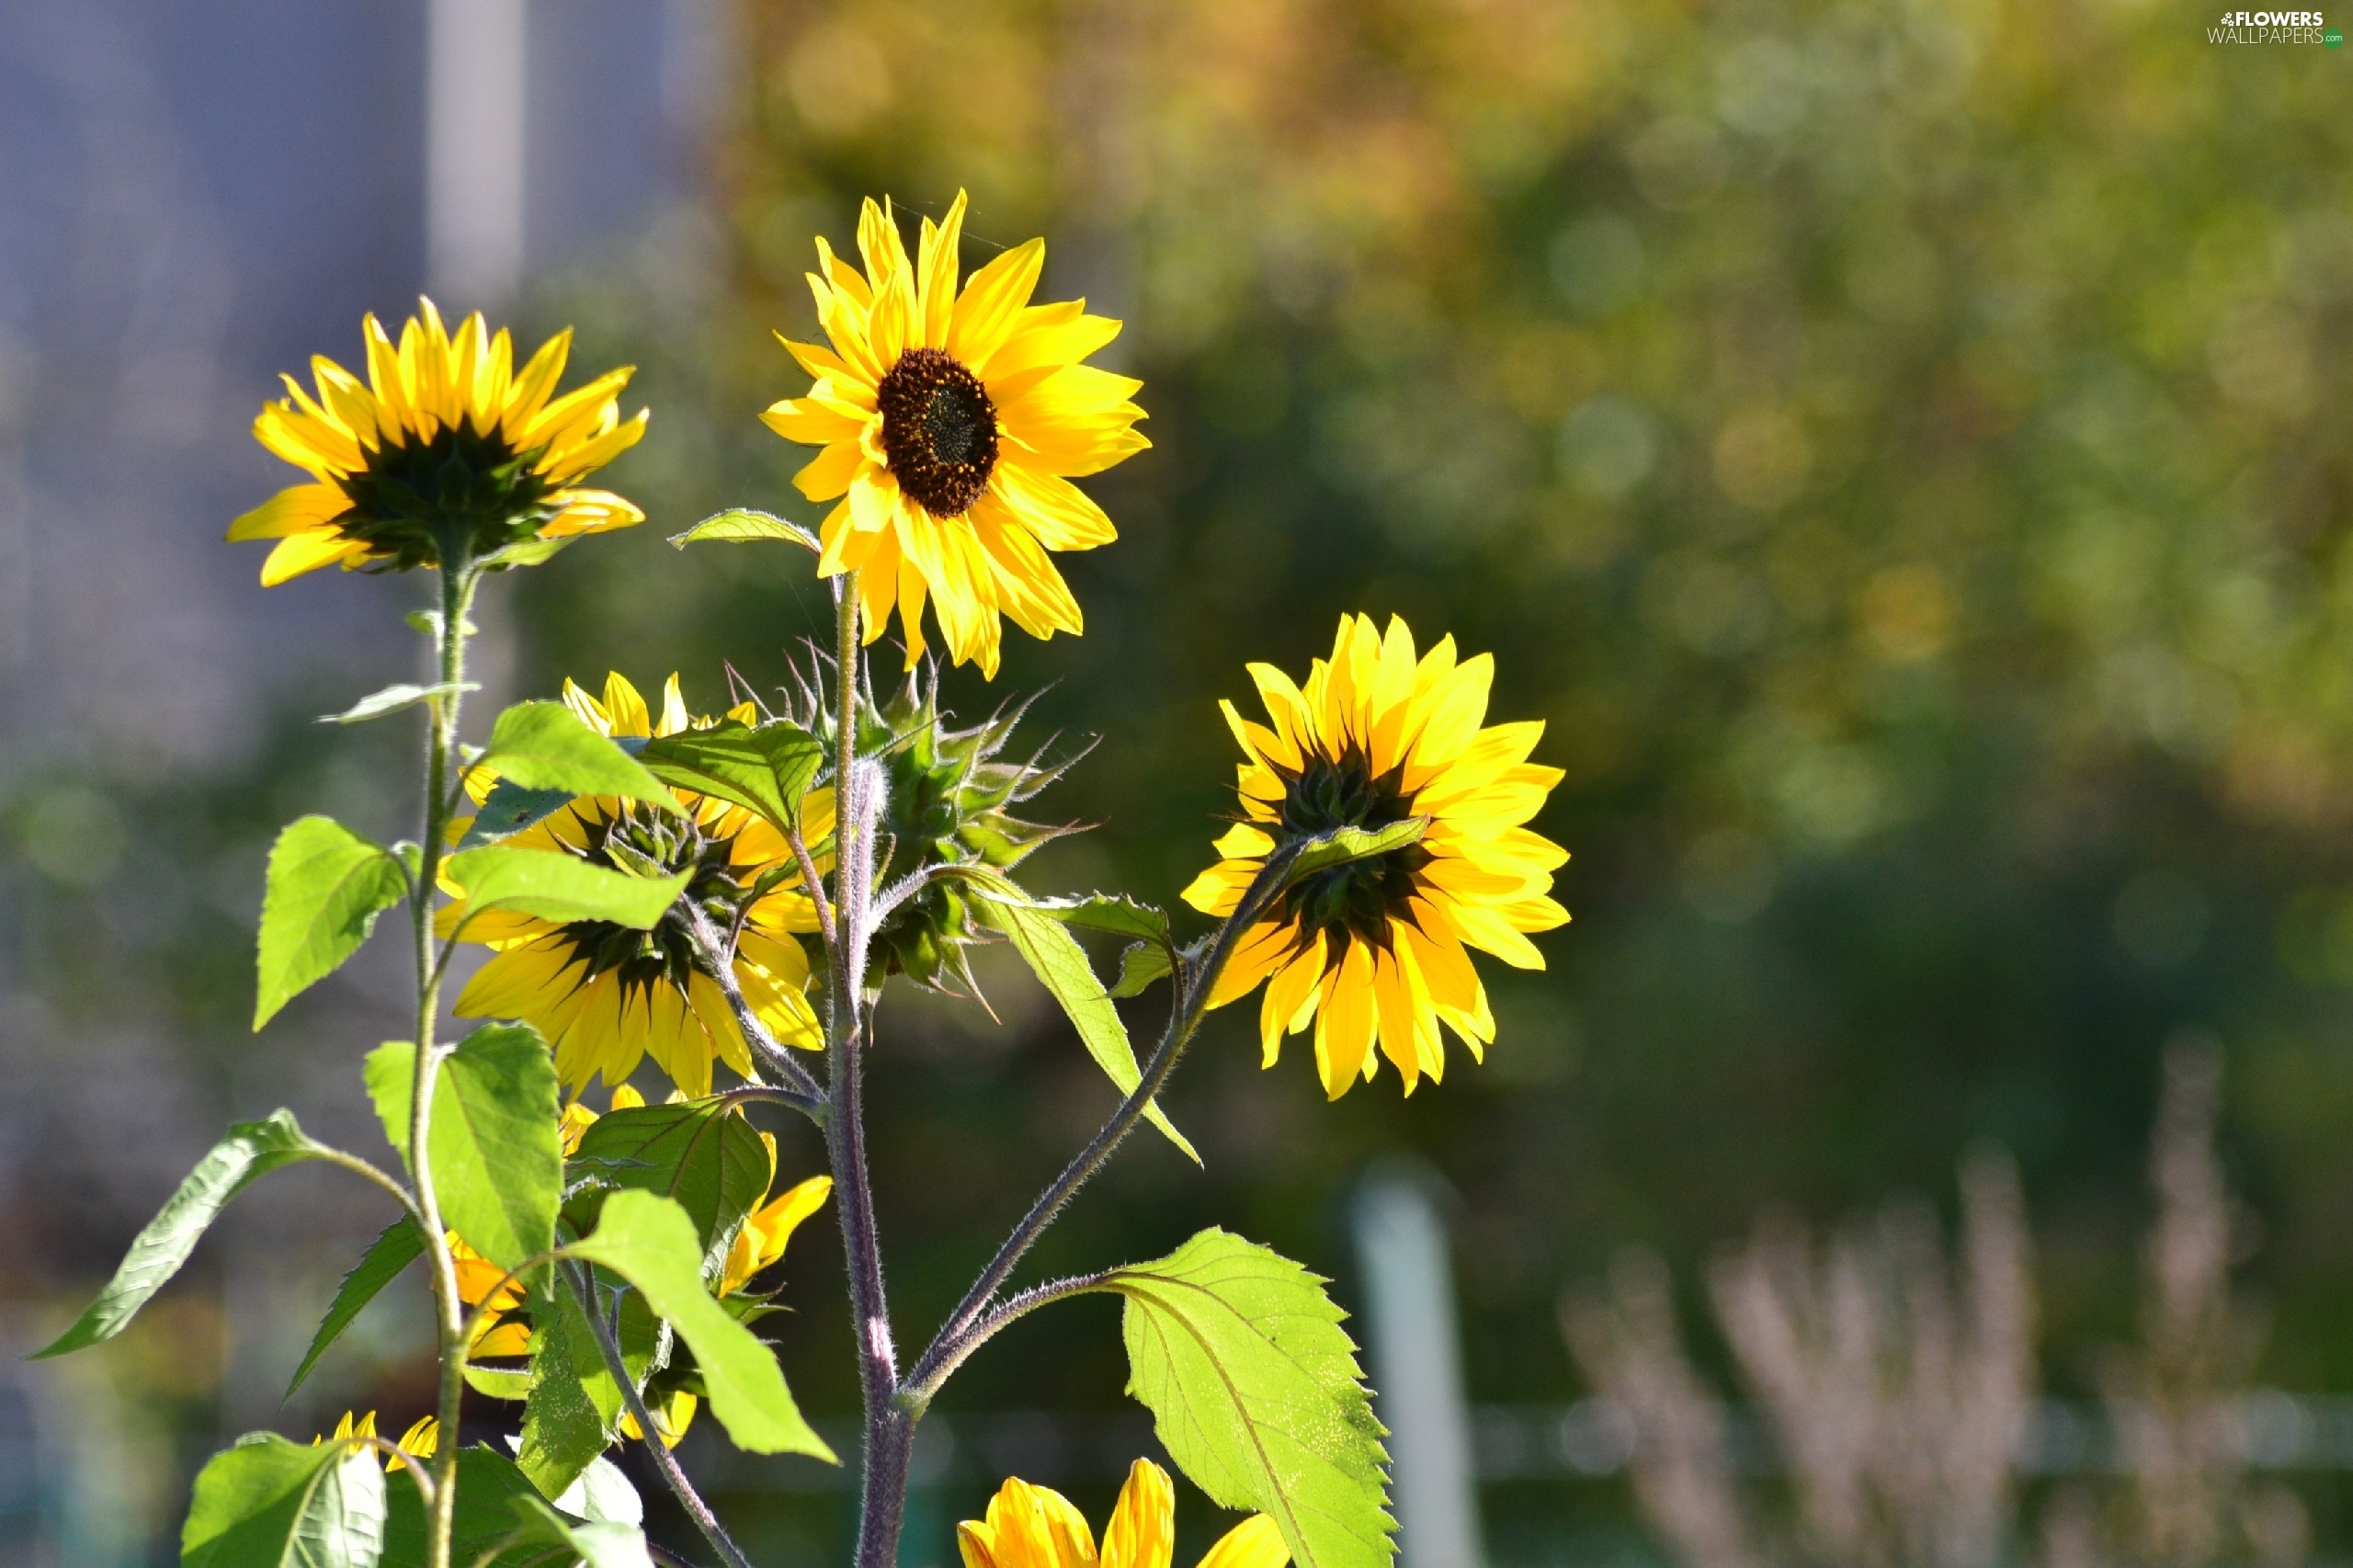 Nice sunflowers, ornamental